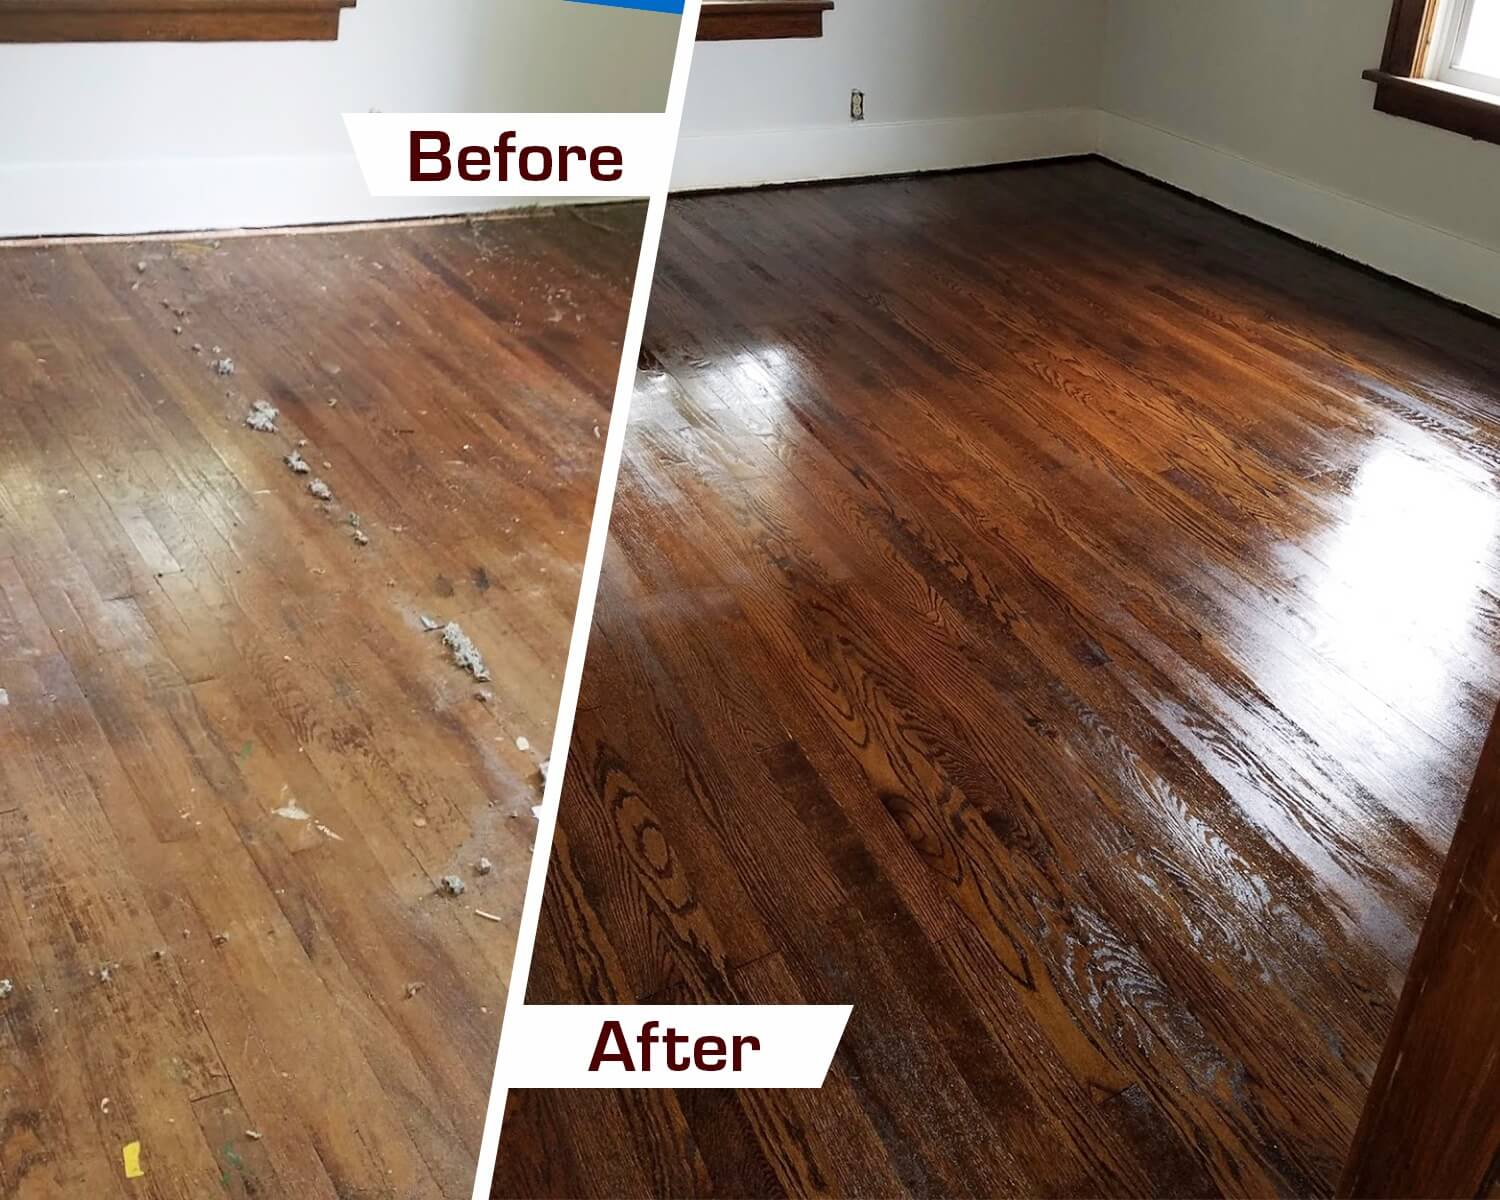 Restored Hardwood Refinishing Ellicott City MD Before and After Photo